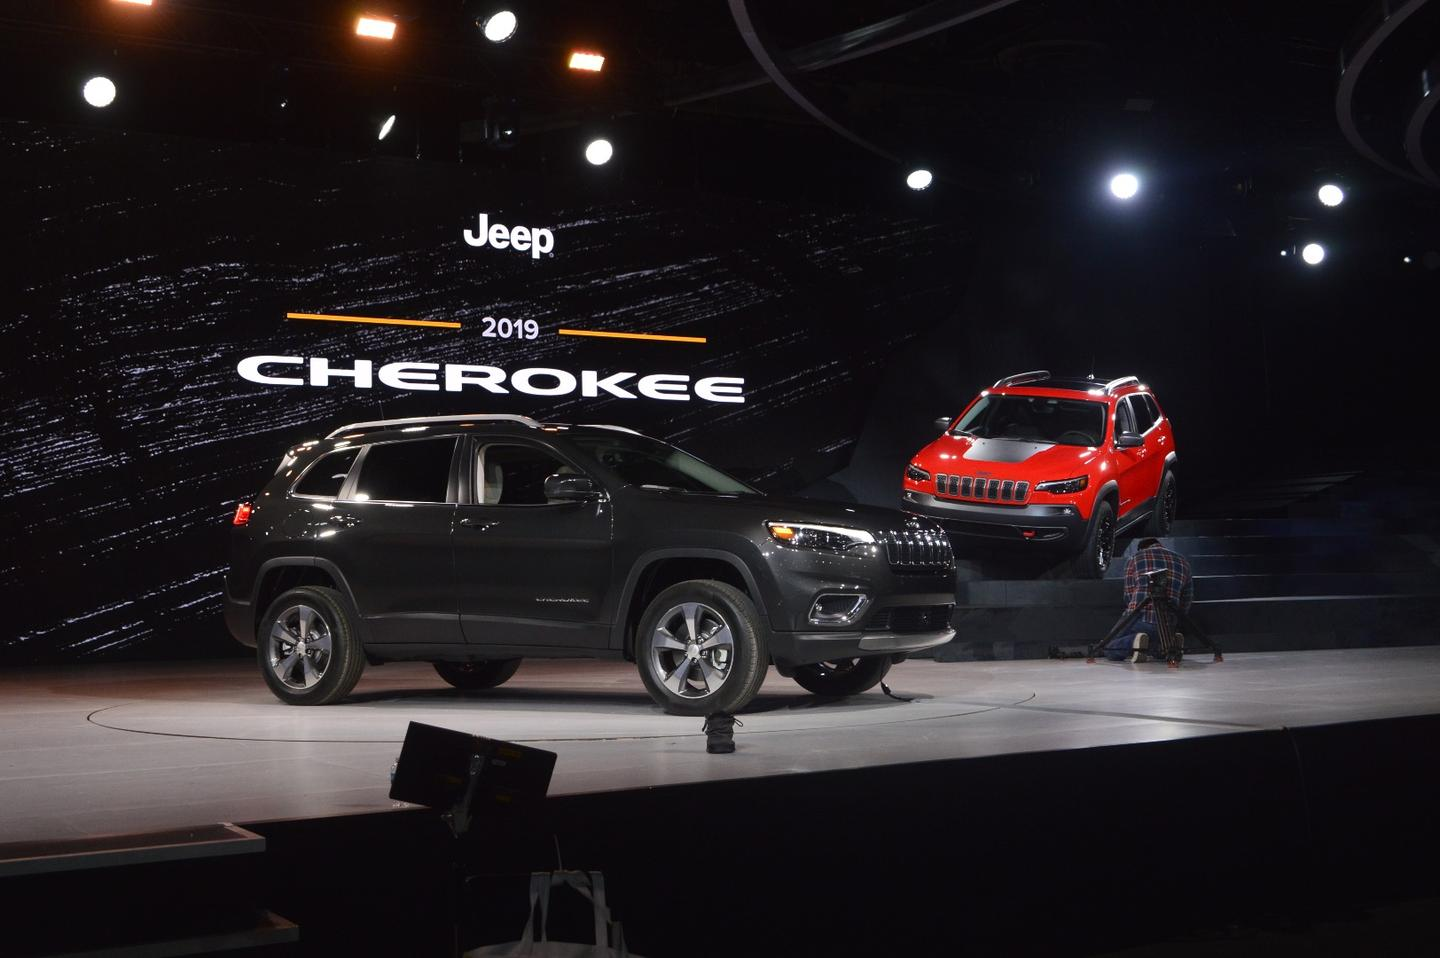 Fiat-Chrysler has pulled back the curtain on a refreshed Jeep Cherokee